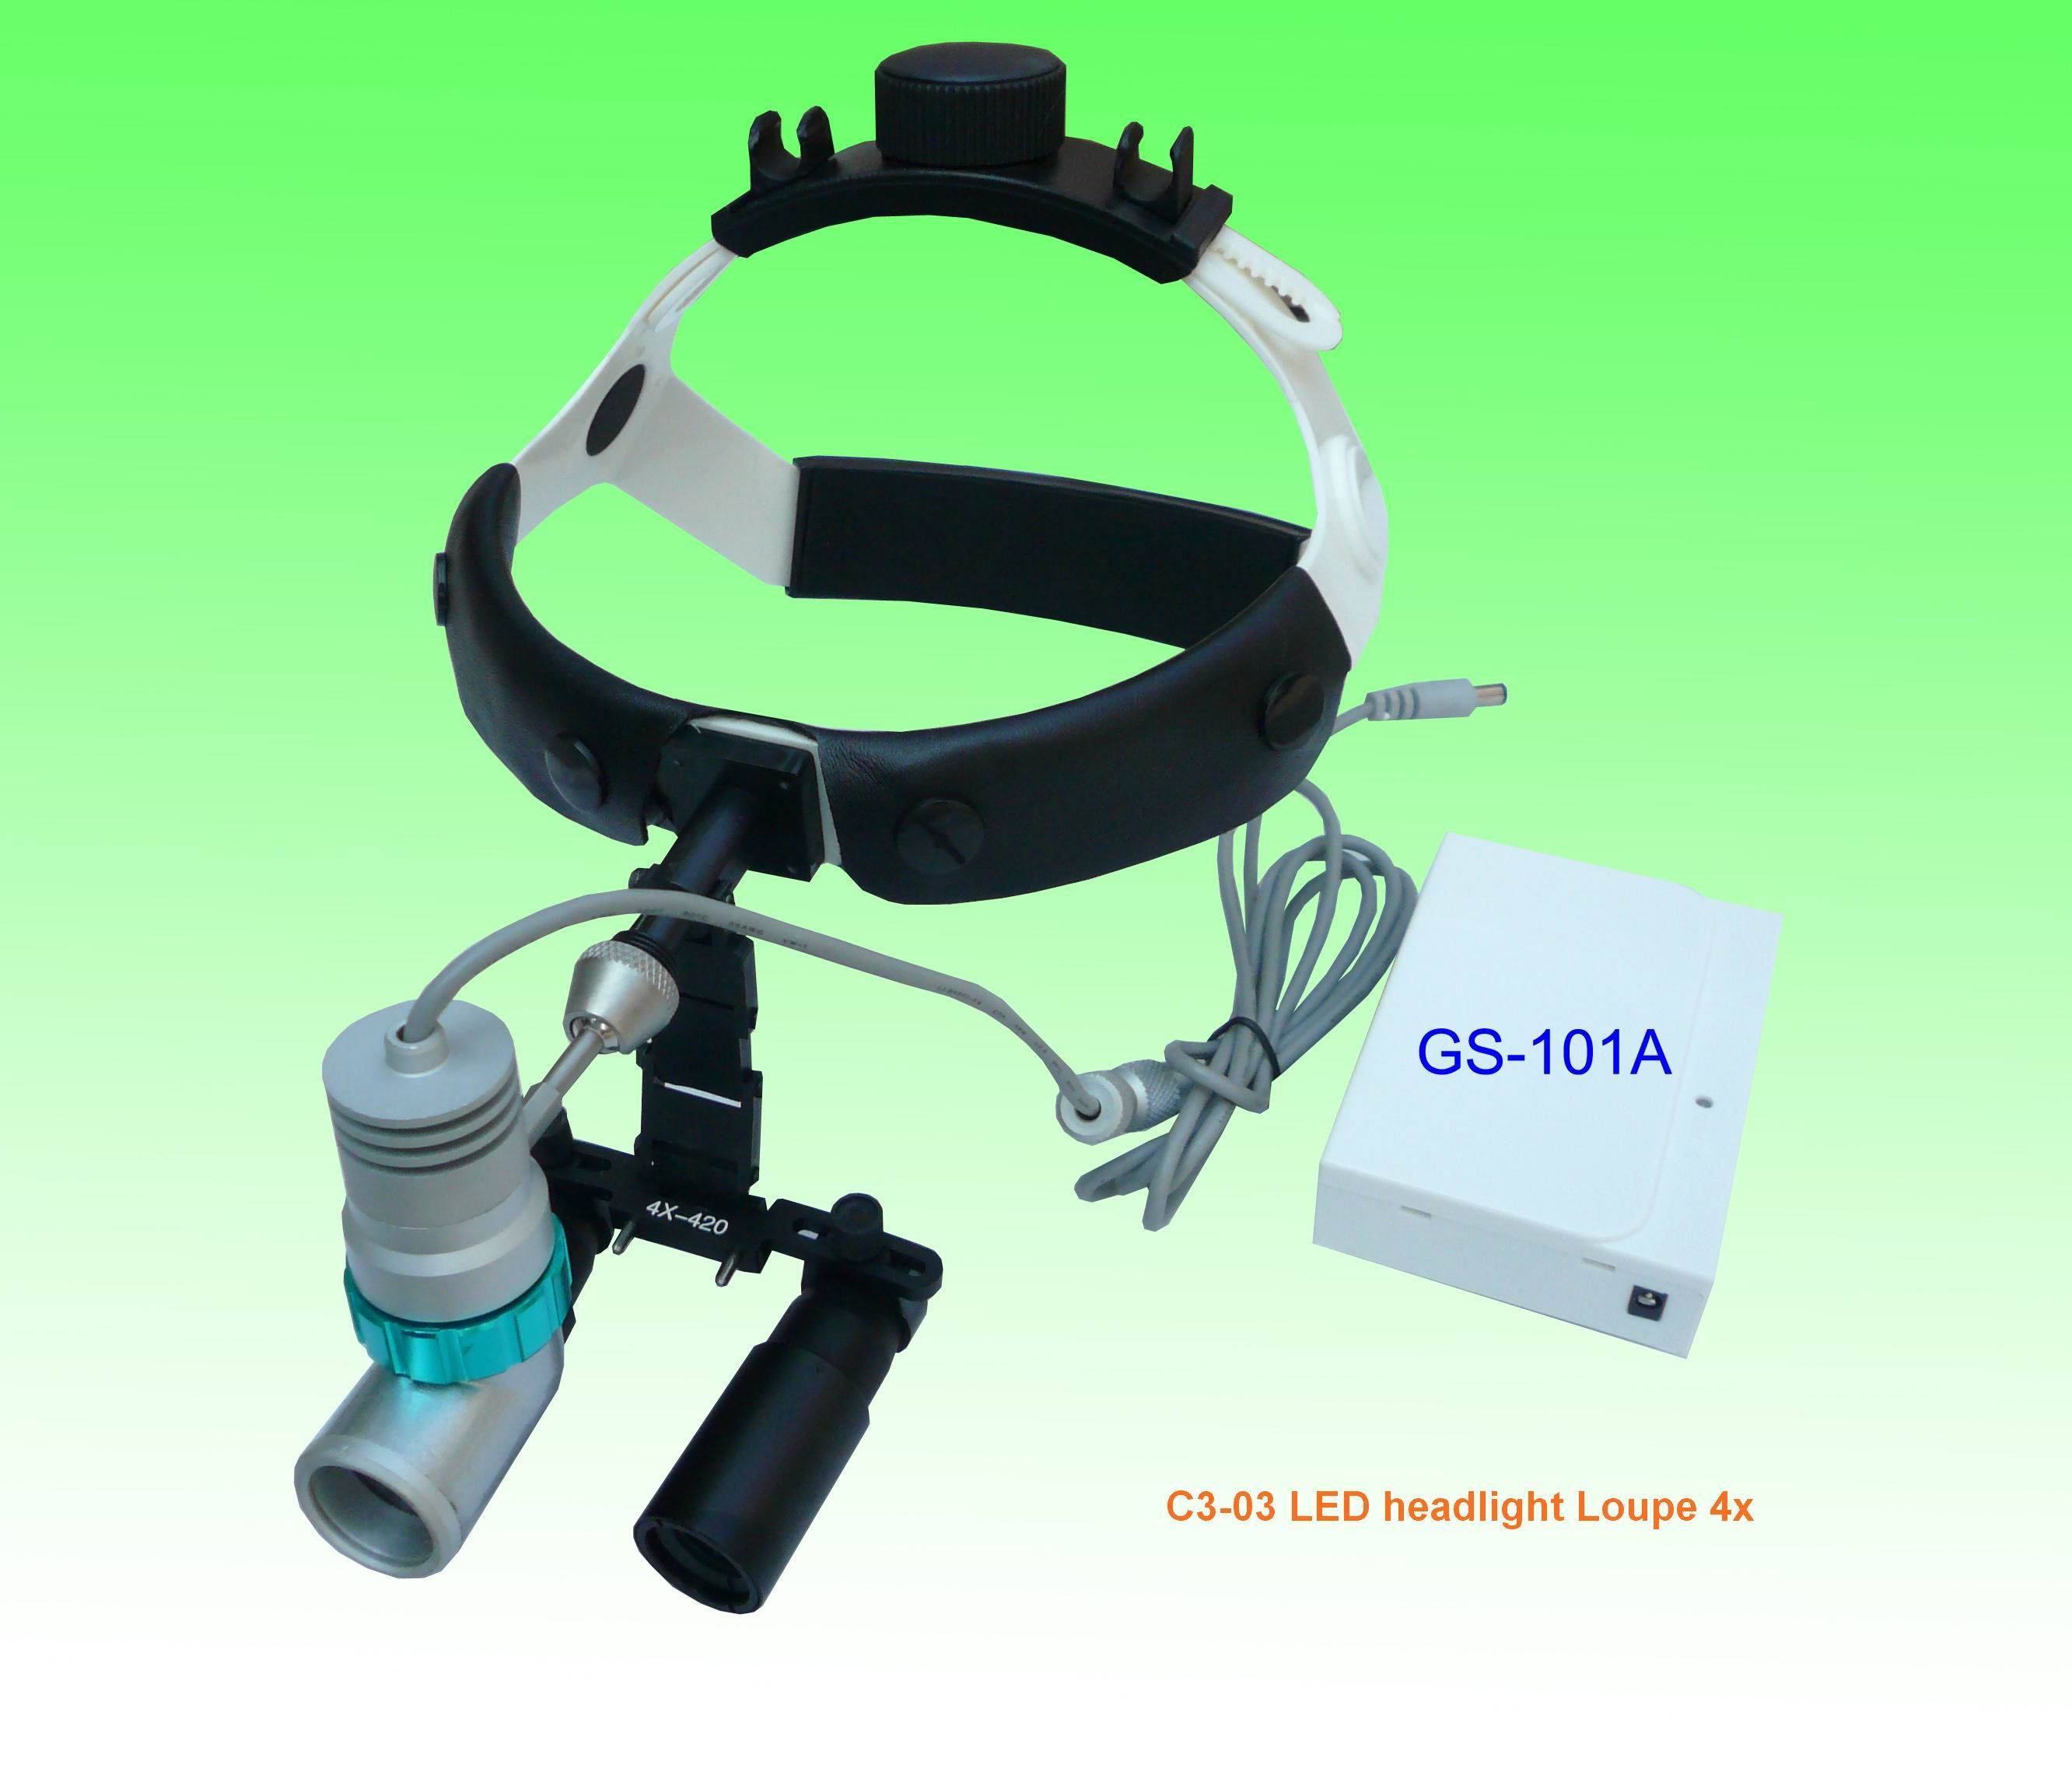 rechargeable surgical LED headlight with magnifier loupe 4x